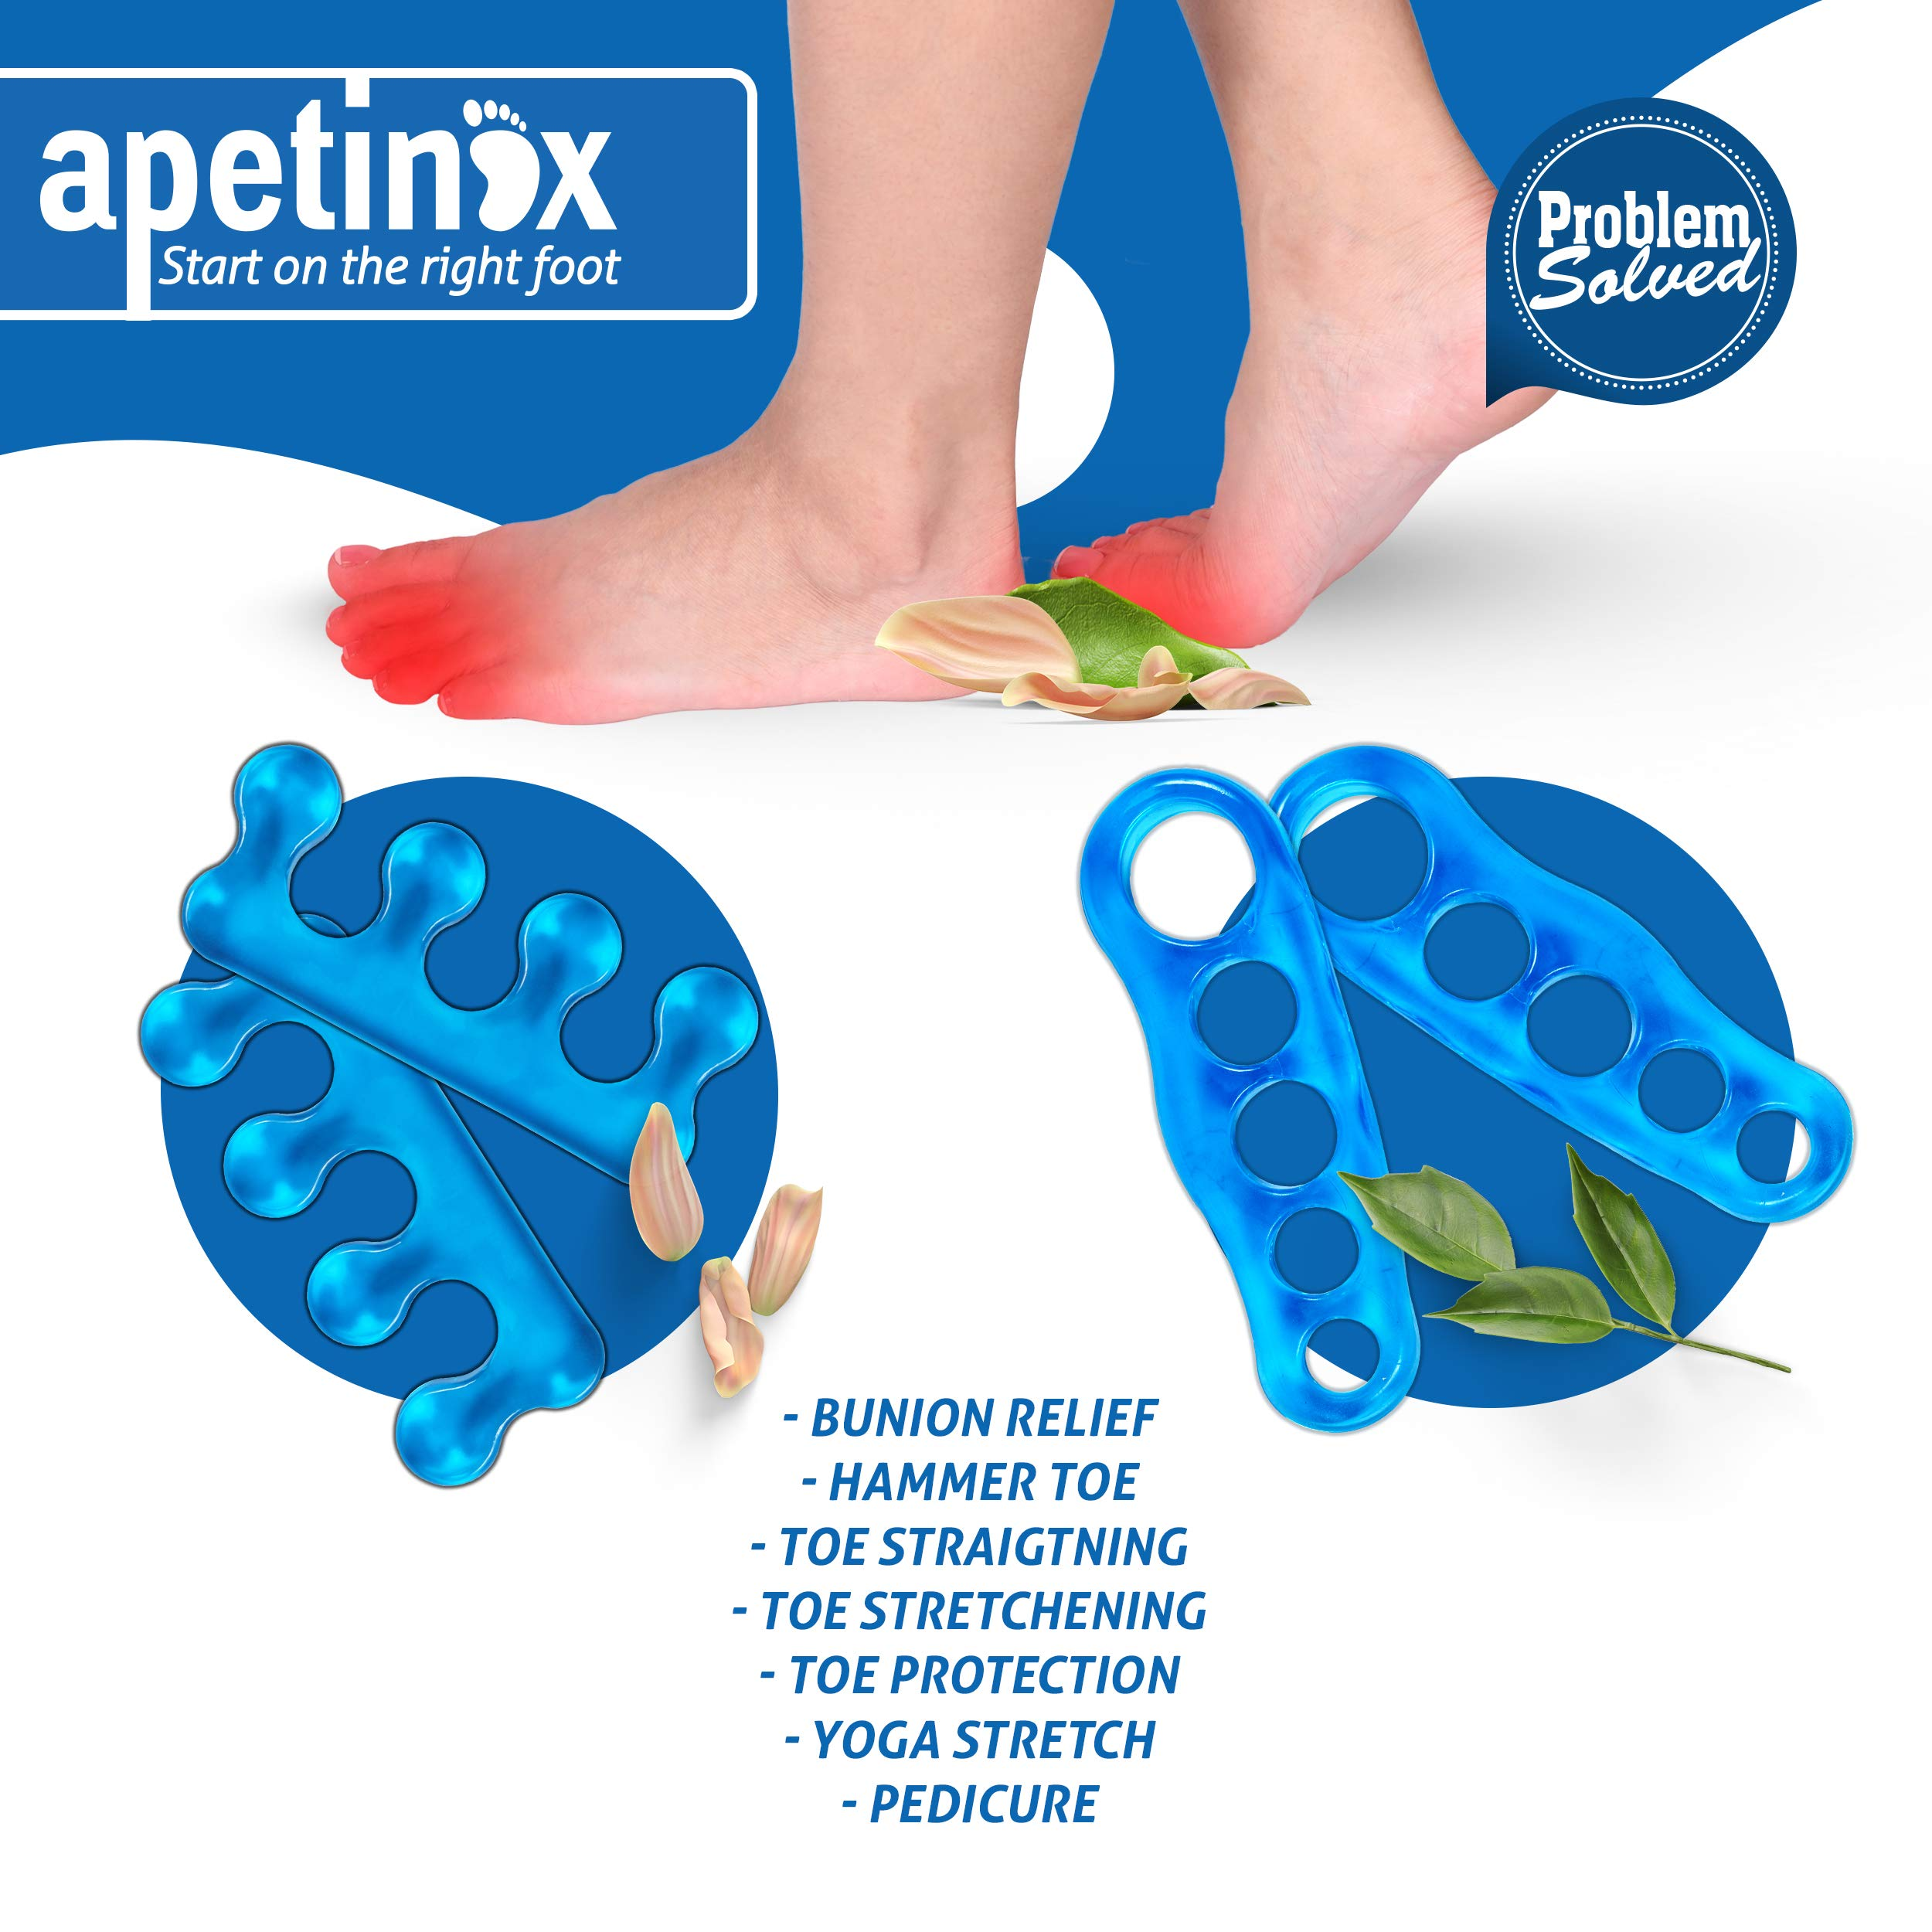 Gel Toe Separators Straighteners, Spacers Open, Close Toe Stretchers for Hammer Crooked Toe Plantar Fasciitis Pain Relief Pedicure Orthopedic Bunion Corrector for Men and Women Bundle of 2 by Apetinox